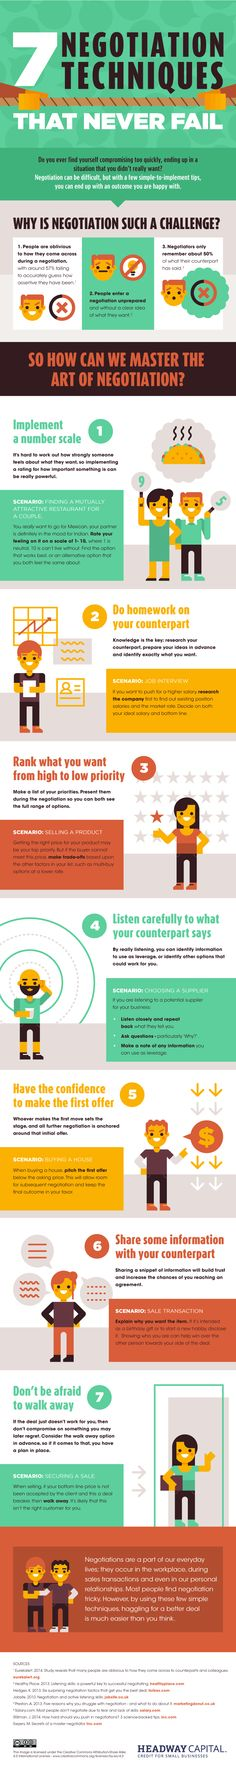 7 Negotiation Techniques That Never Fail #Infographic #Business #Marketing